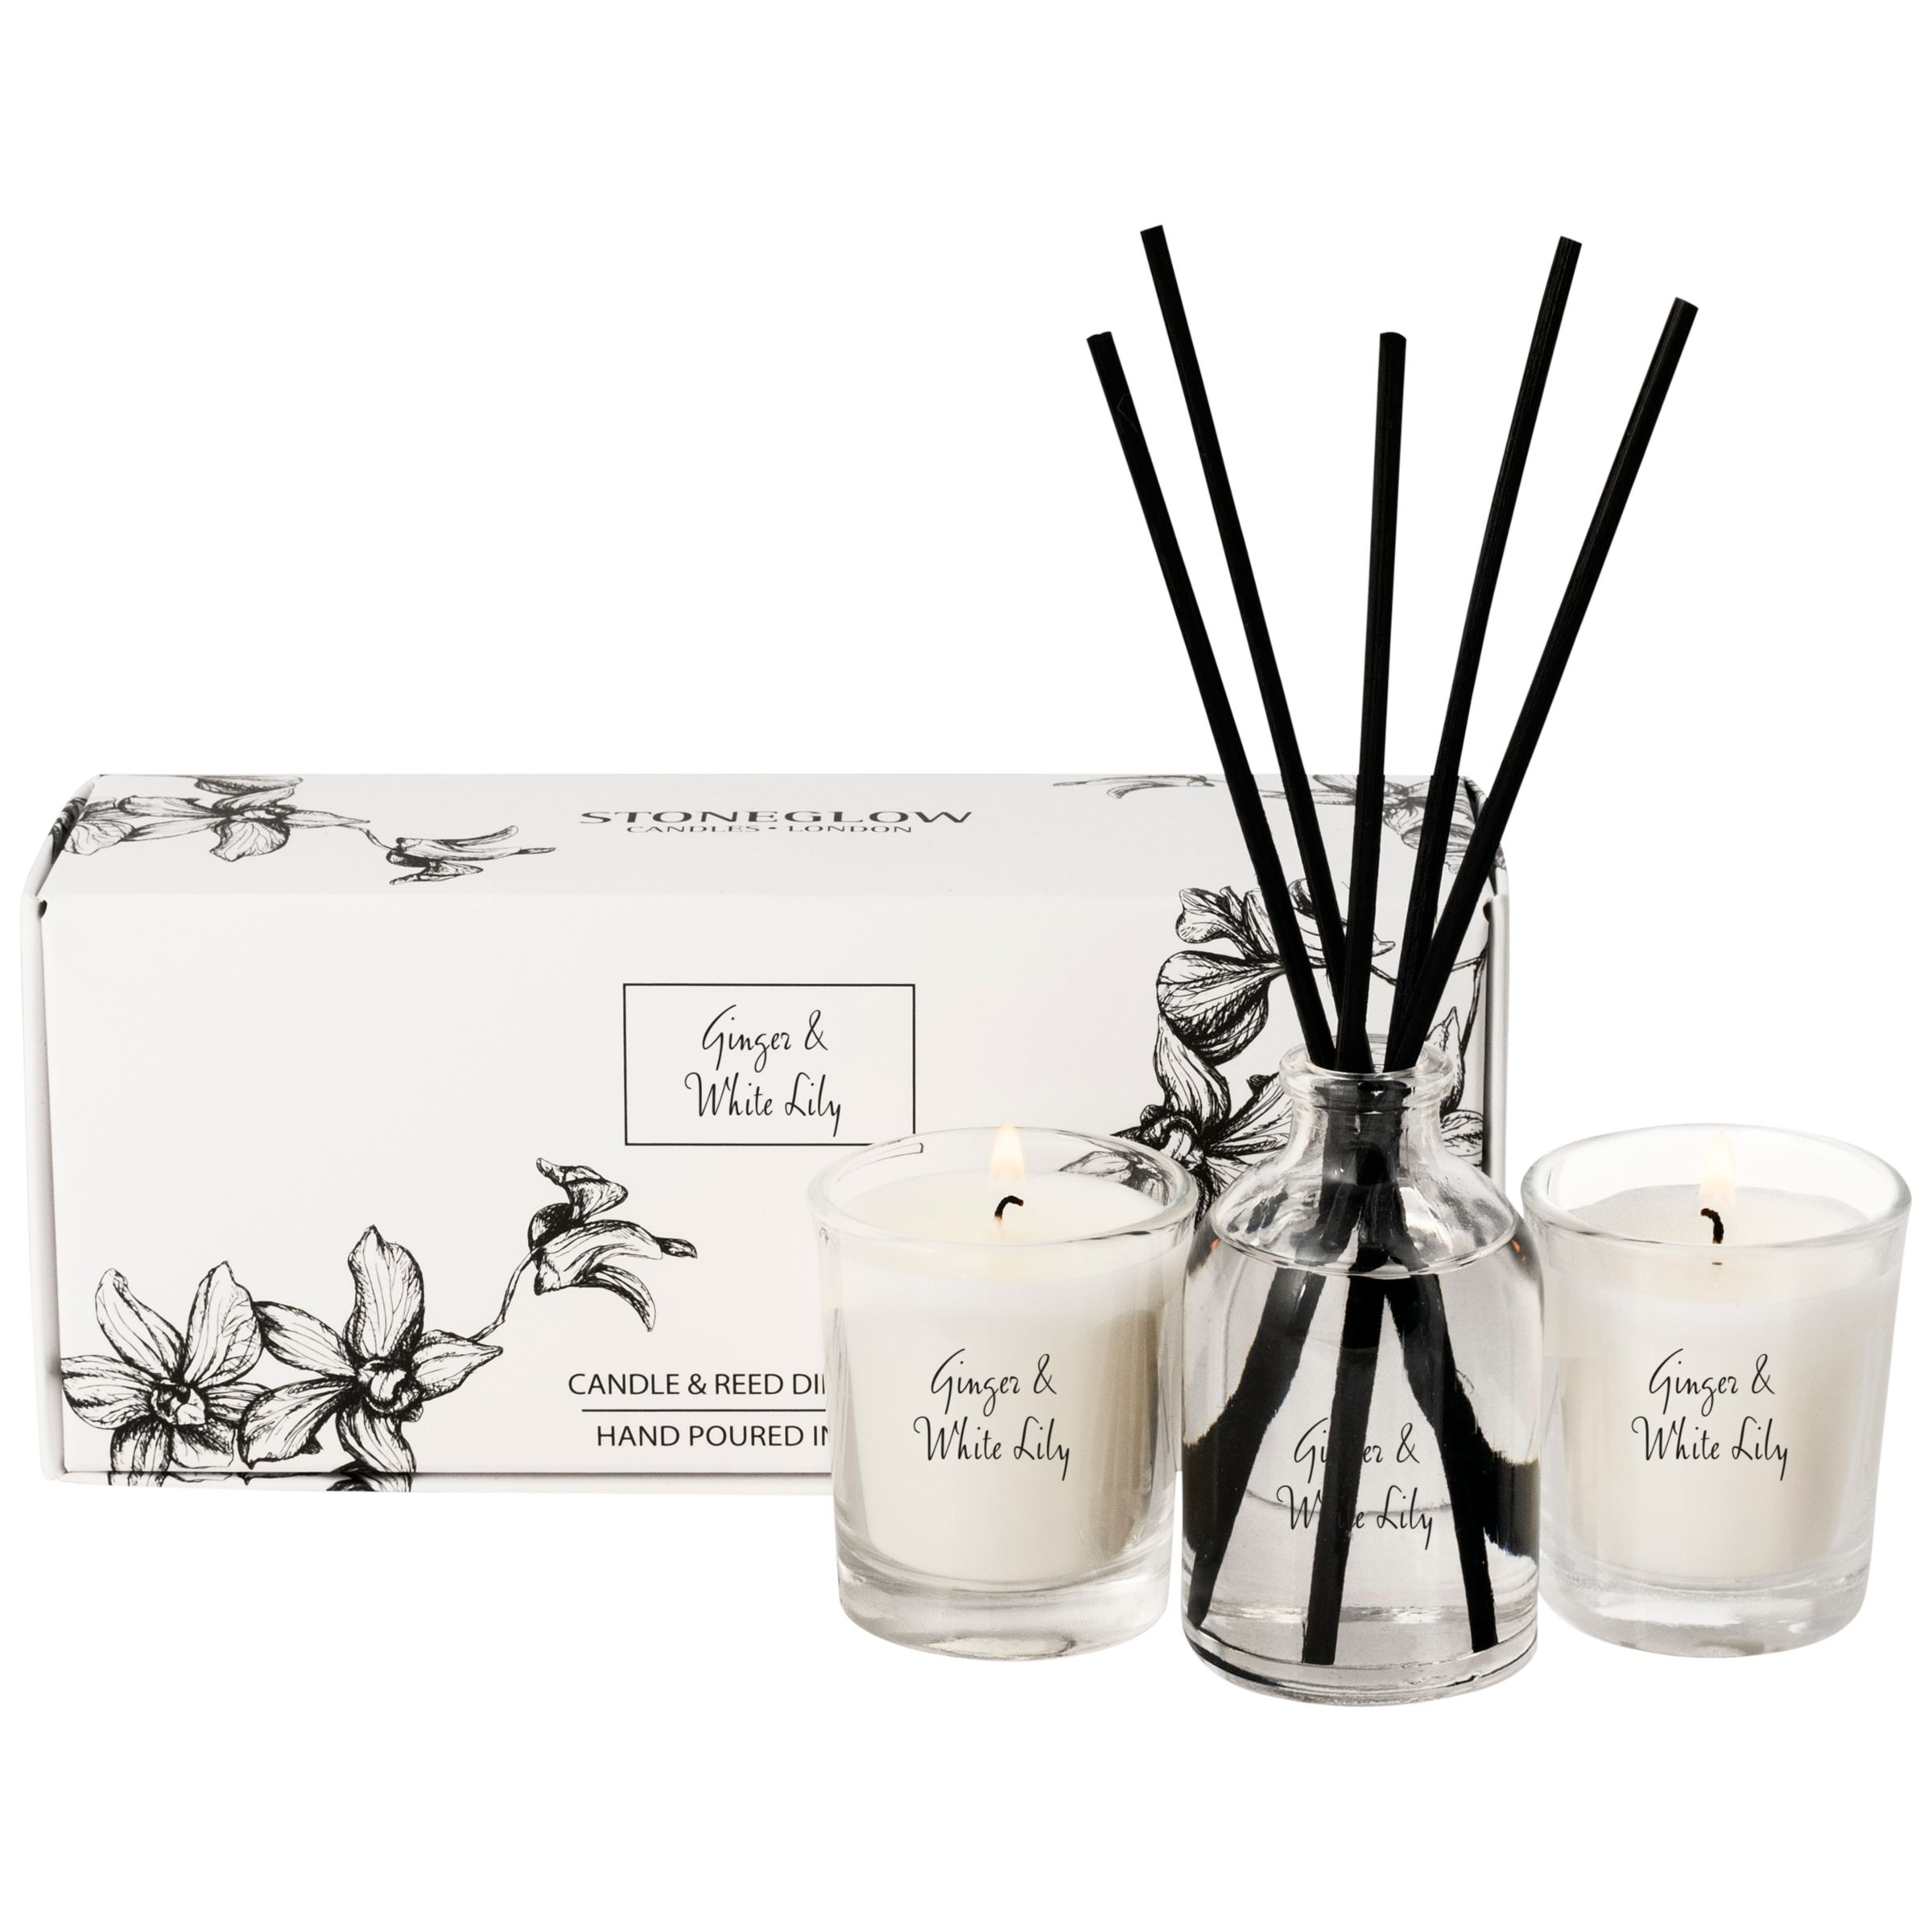 Stoneglow Stoneglow Scented Candles and Diffuser Gift Set, New Ginger and White Lily